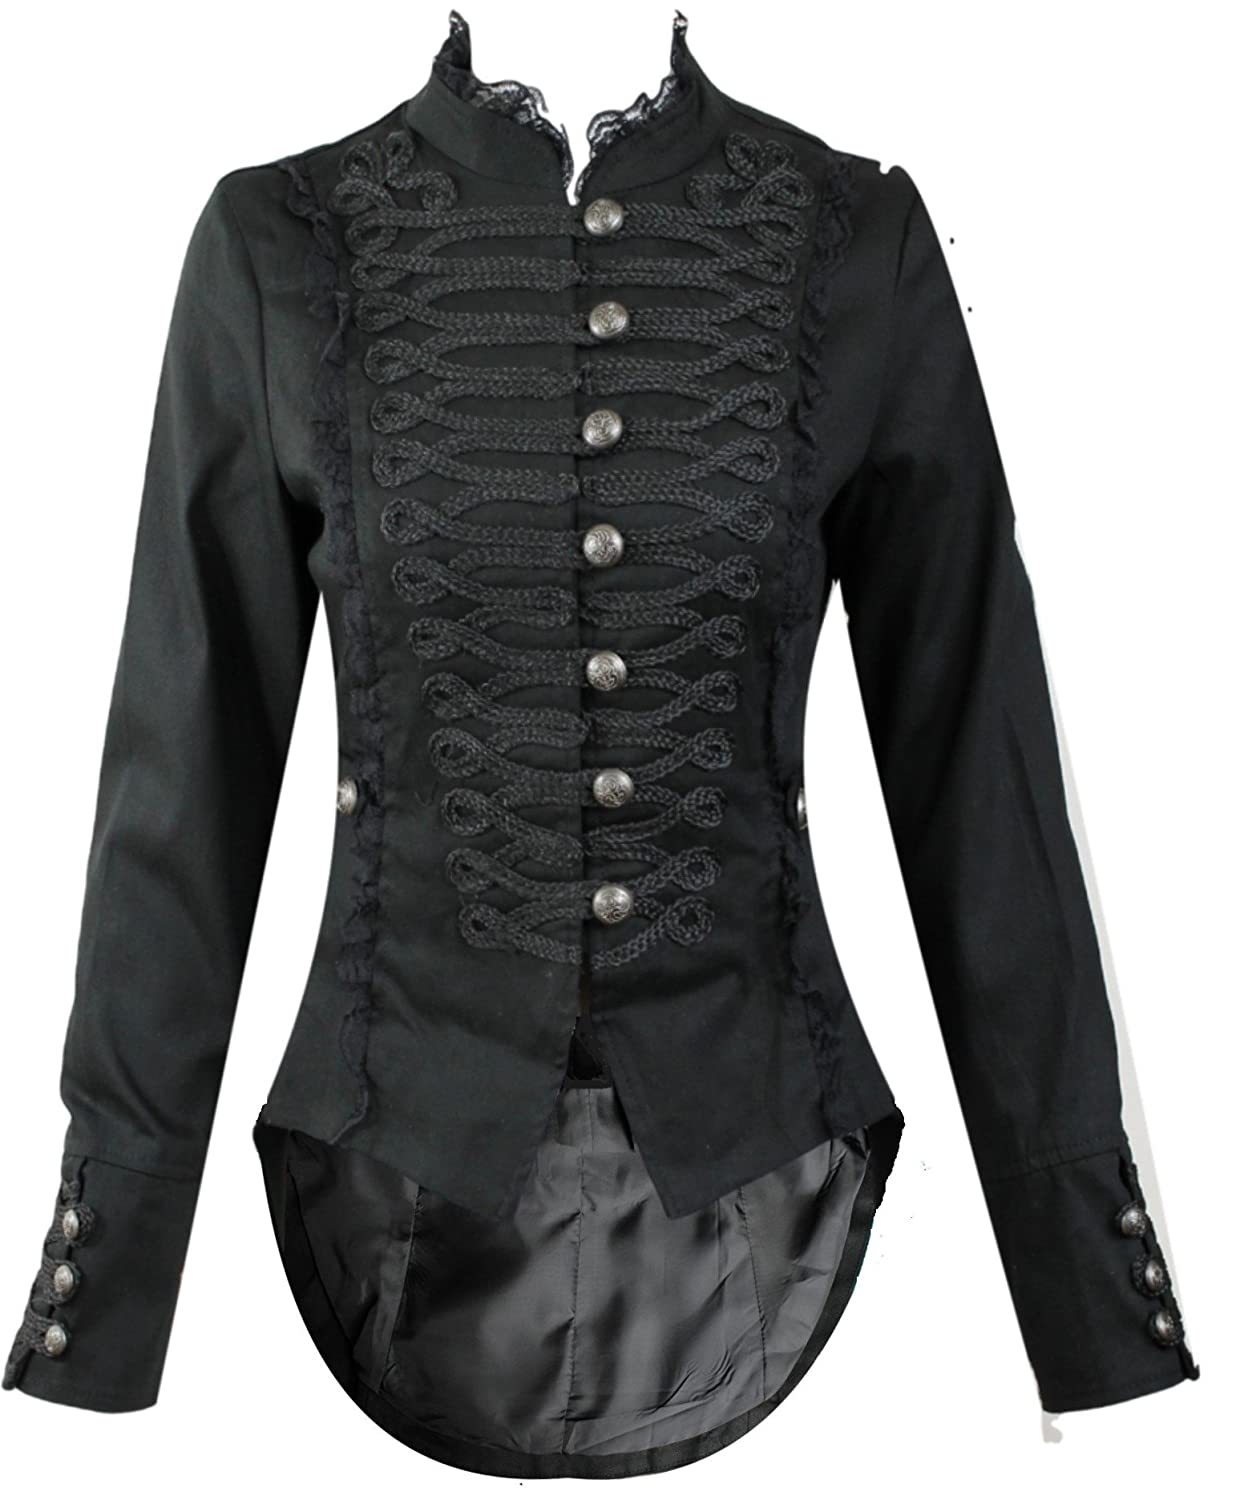 Steampunk Jacket, Coat, Overcoat, Cape Womens H&R Steampunk Gothic Parade Tail Coat  AT vintagedancer.com